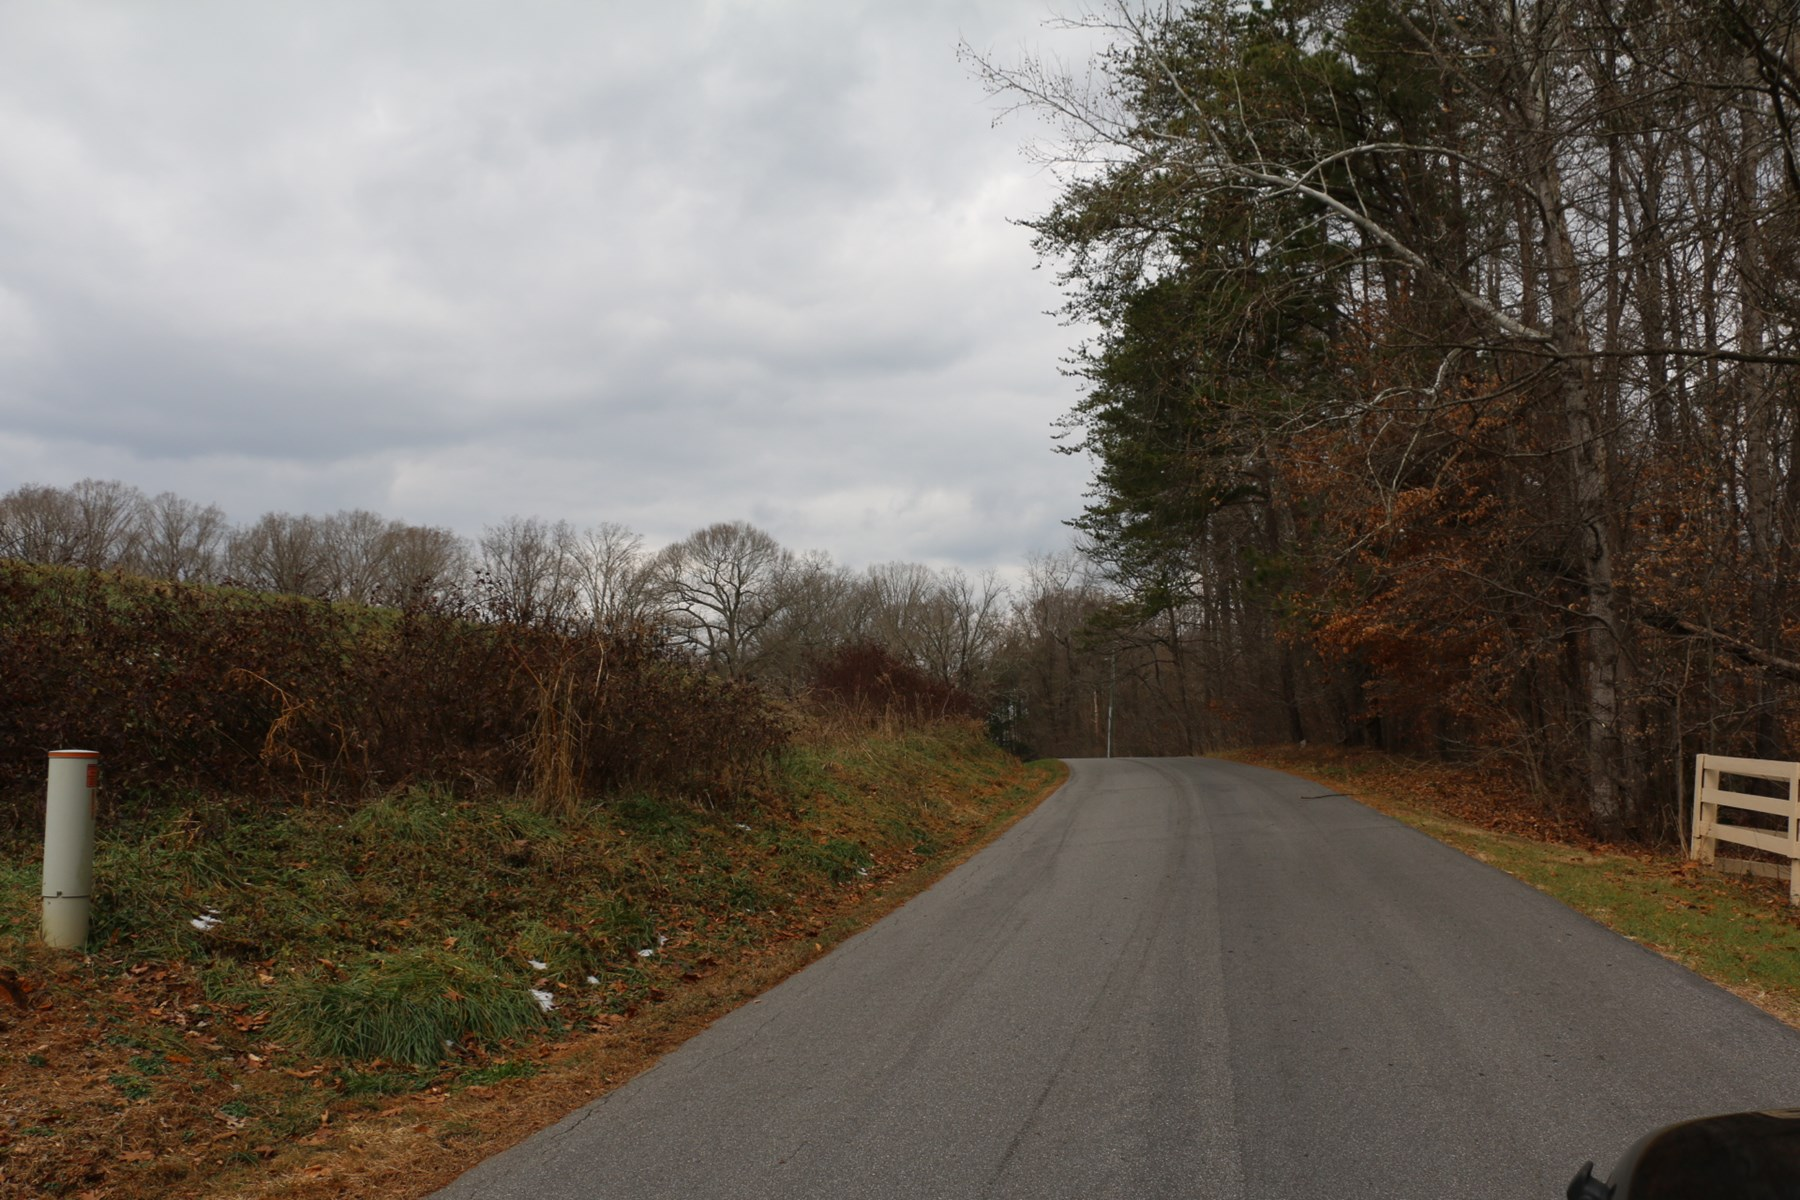 Land for sale in Stanleytown, VA